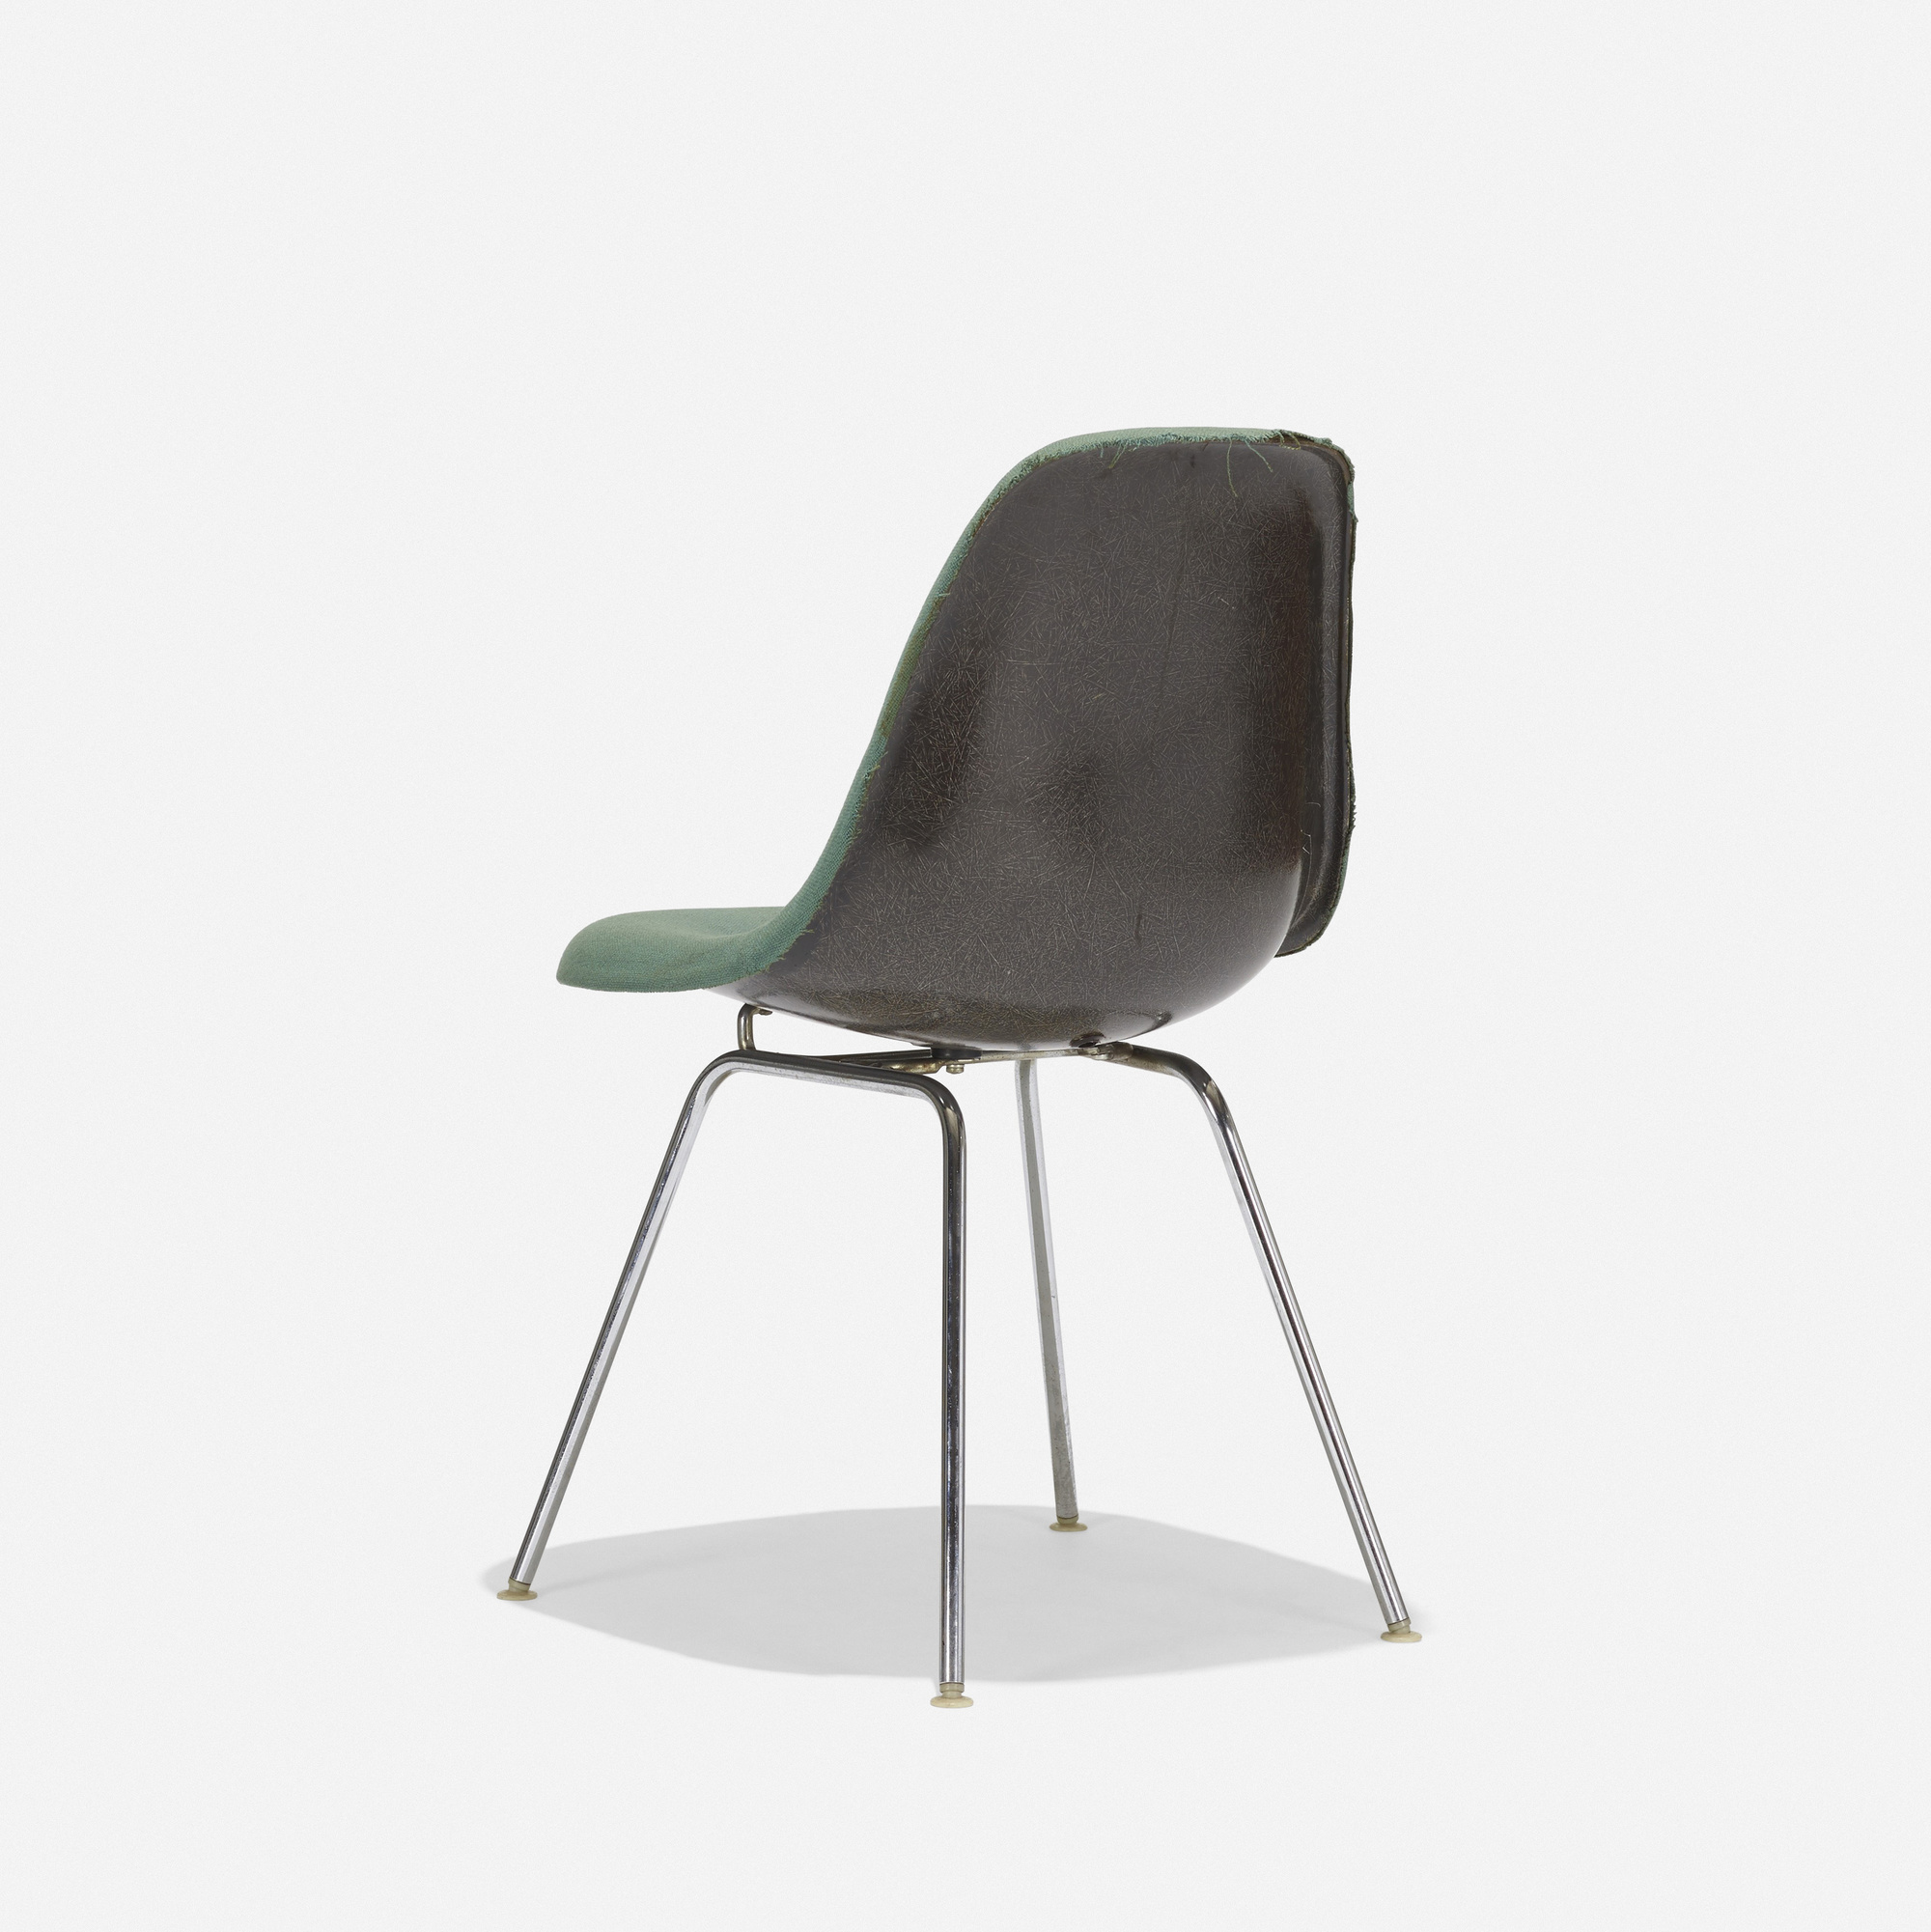 109: Charles and Ray Eames / DSX-1 (3 of 4)